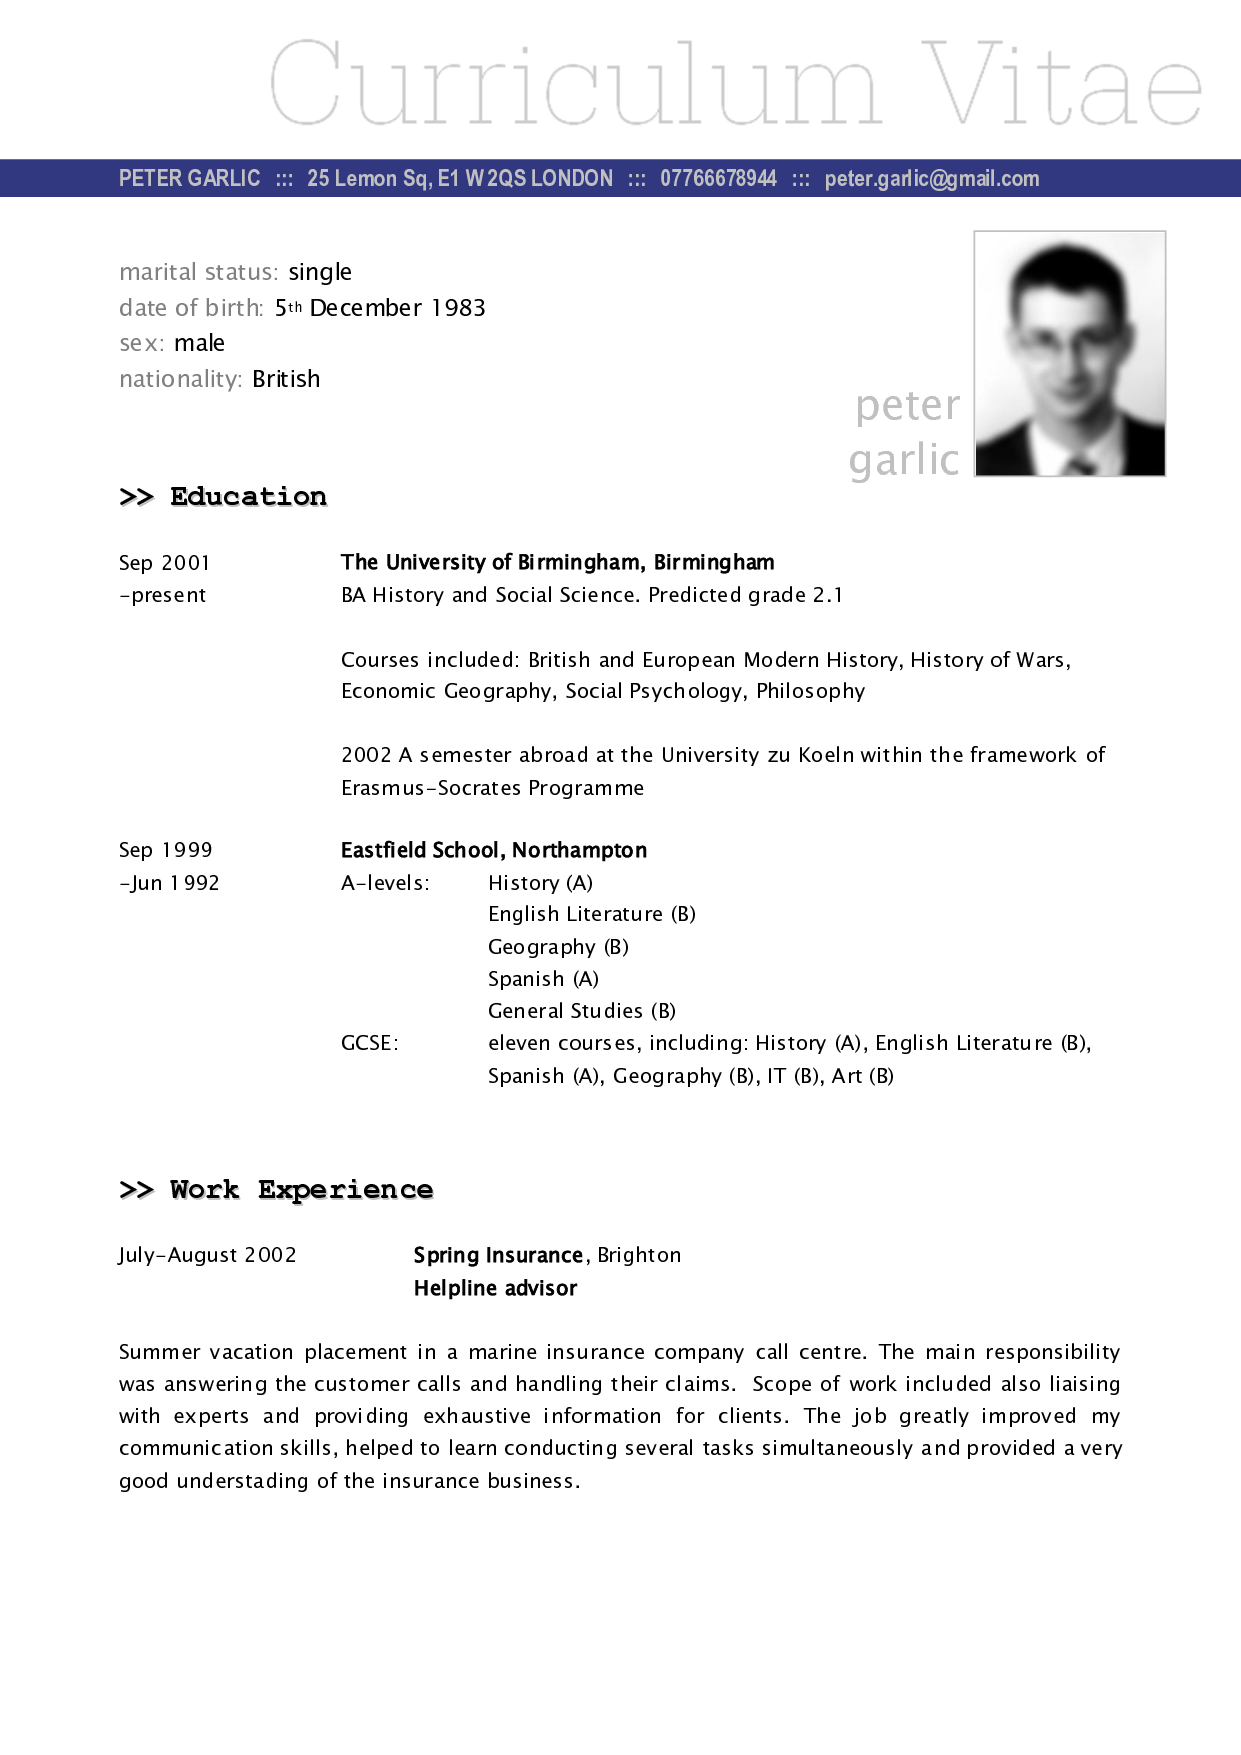 resume samples for jobs